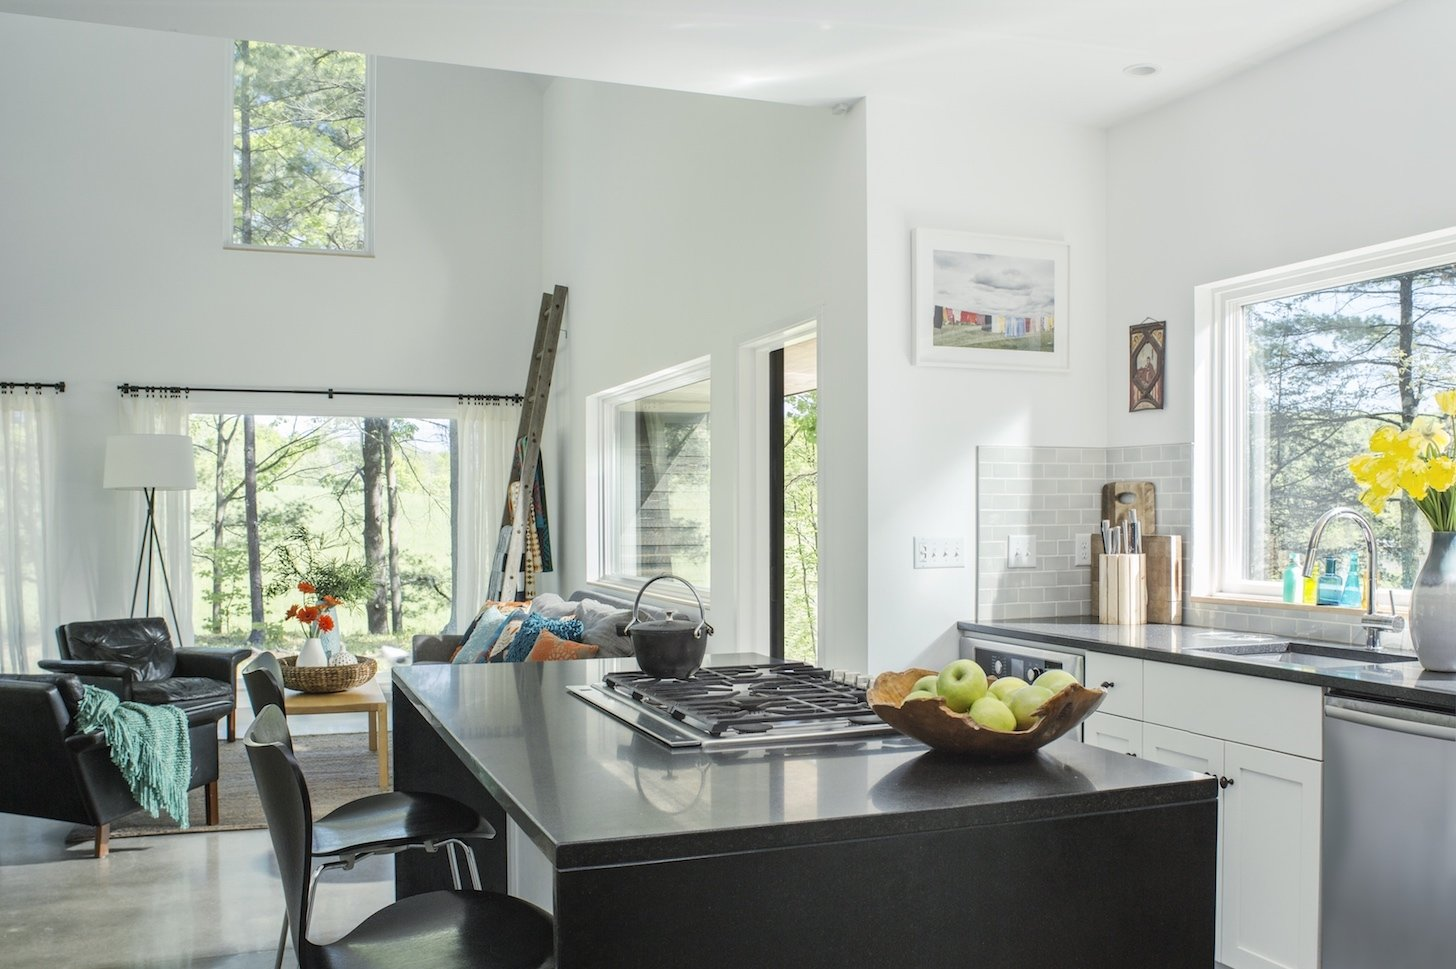 Architect Elizabeth Herrmann's Knoll House project, Best Transitional category winner of 2017 Marvin Architects Challenge.   Tagged: Kitchen.  Knoll House